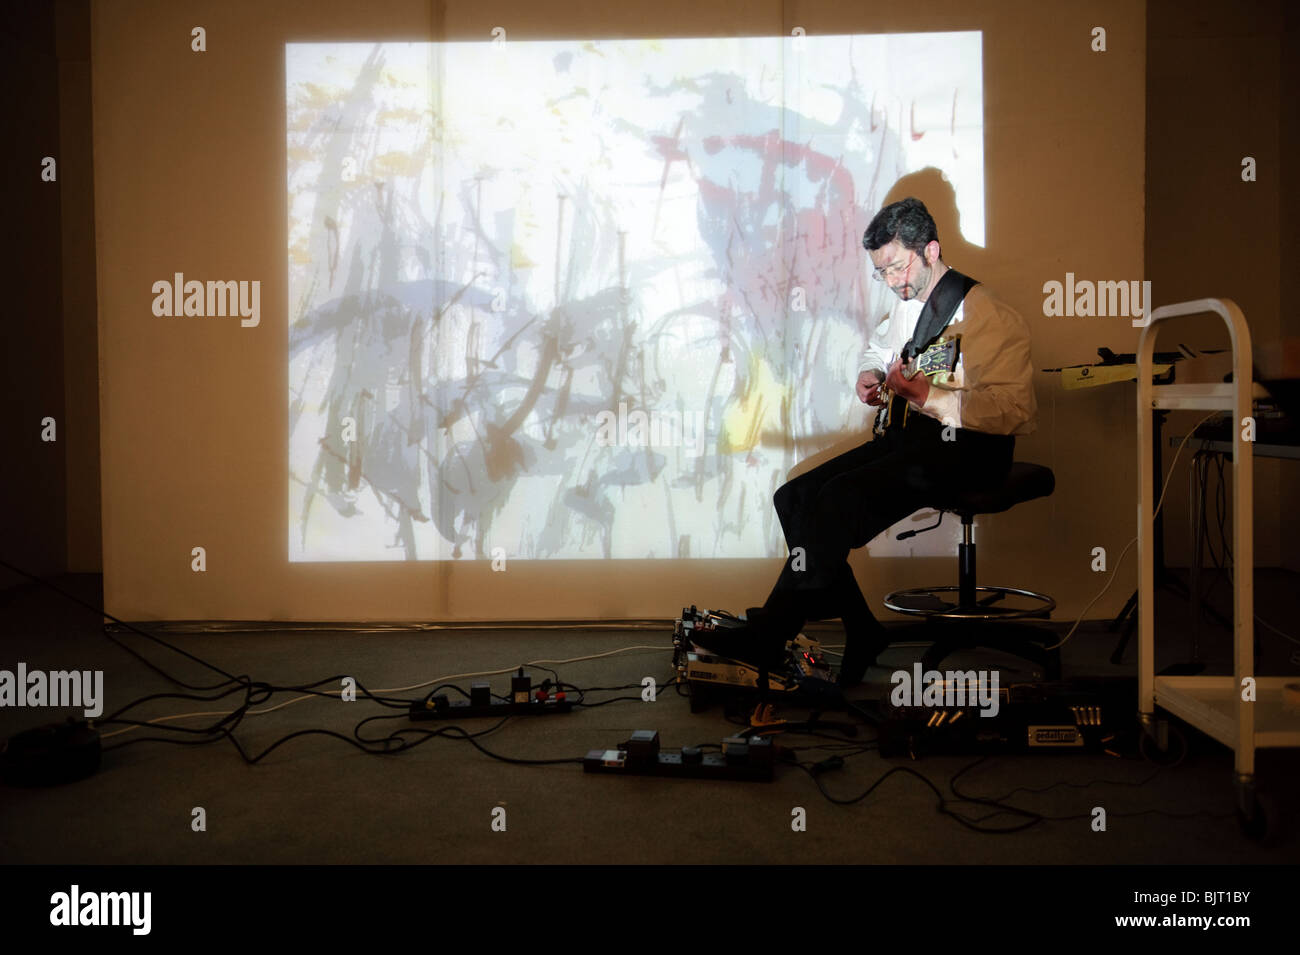 welsh artists Maria Hayes and John Harvey collaborating on a sound and visual art project, School of Art, Aberystwyth - Stock Image